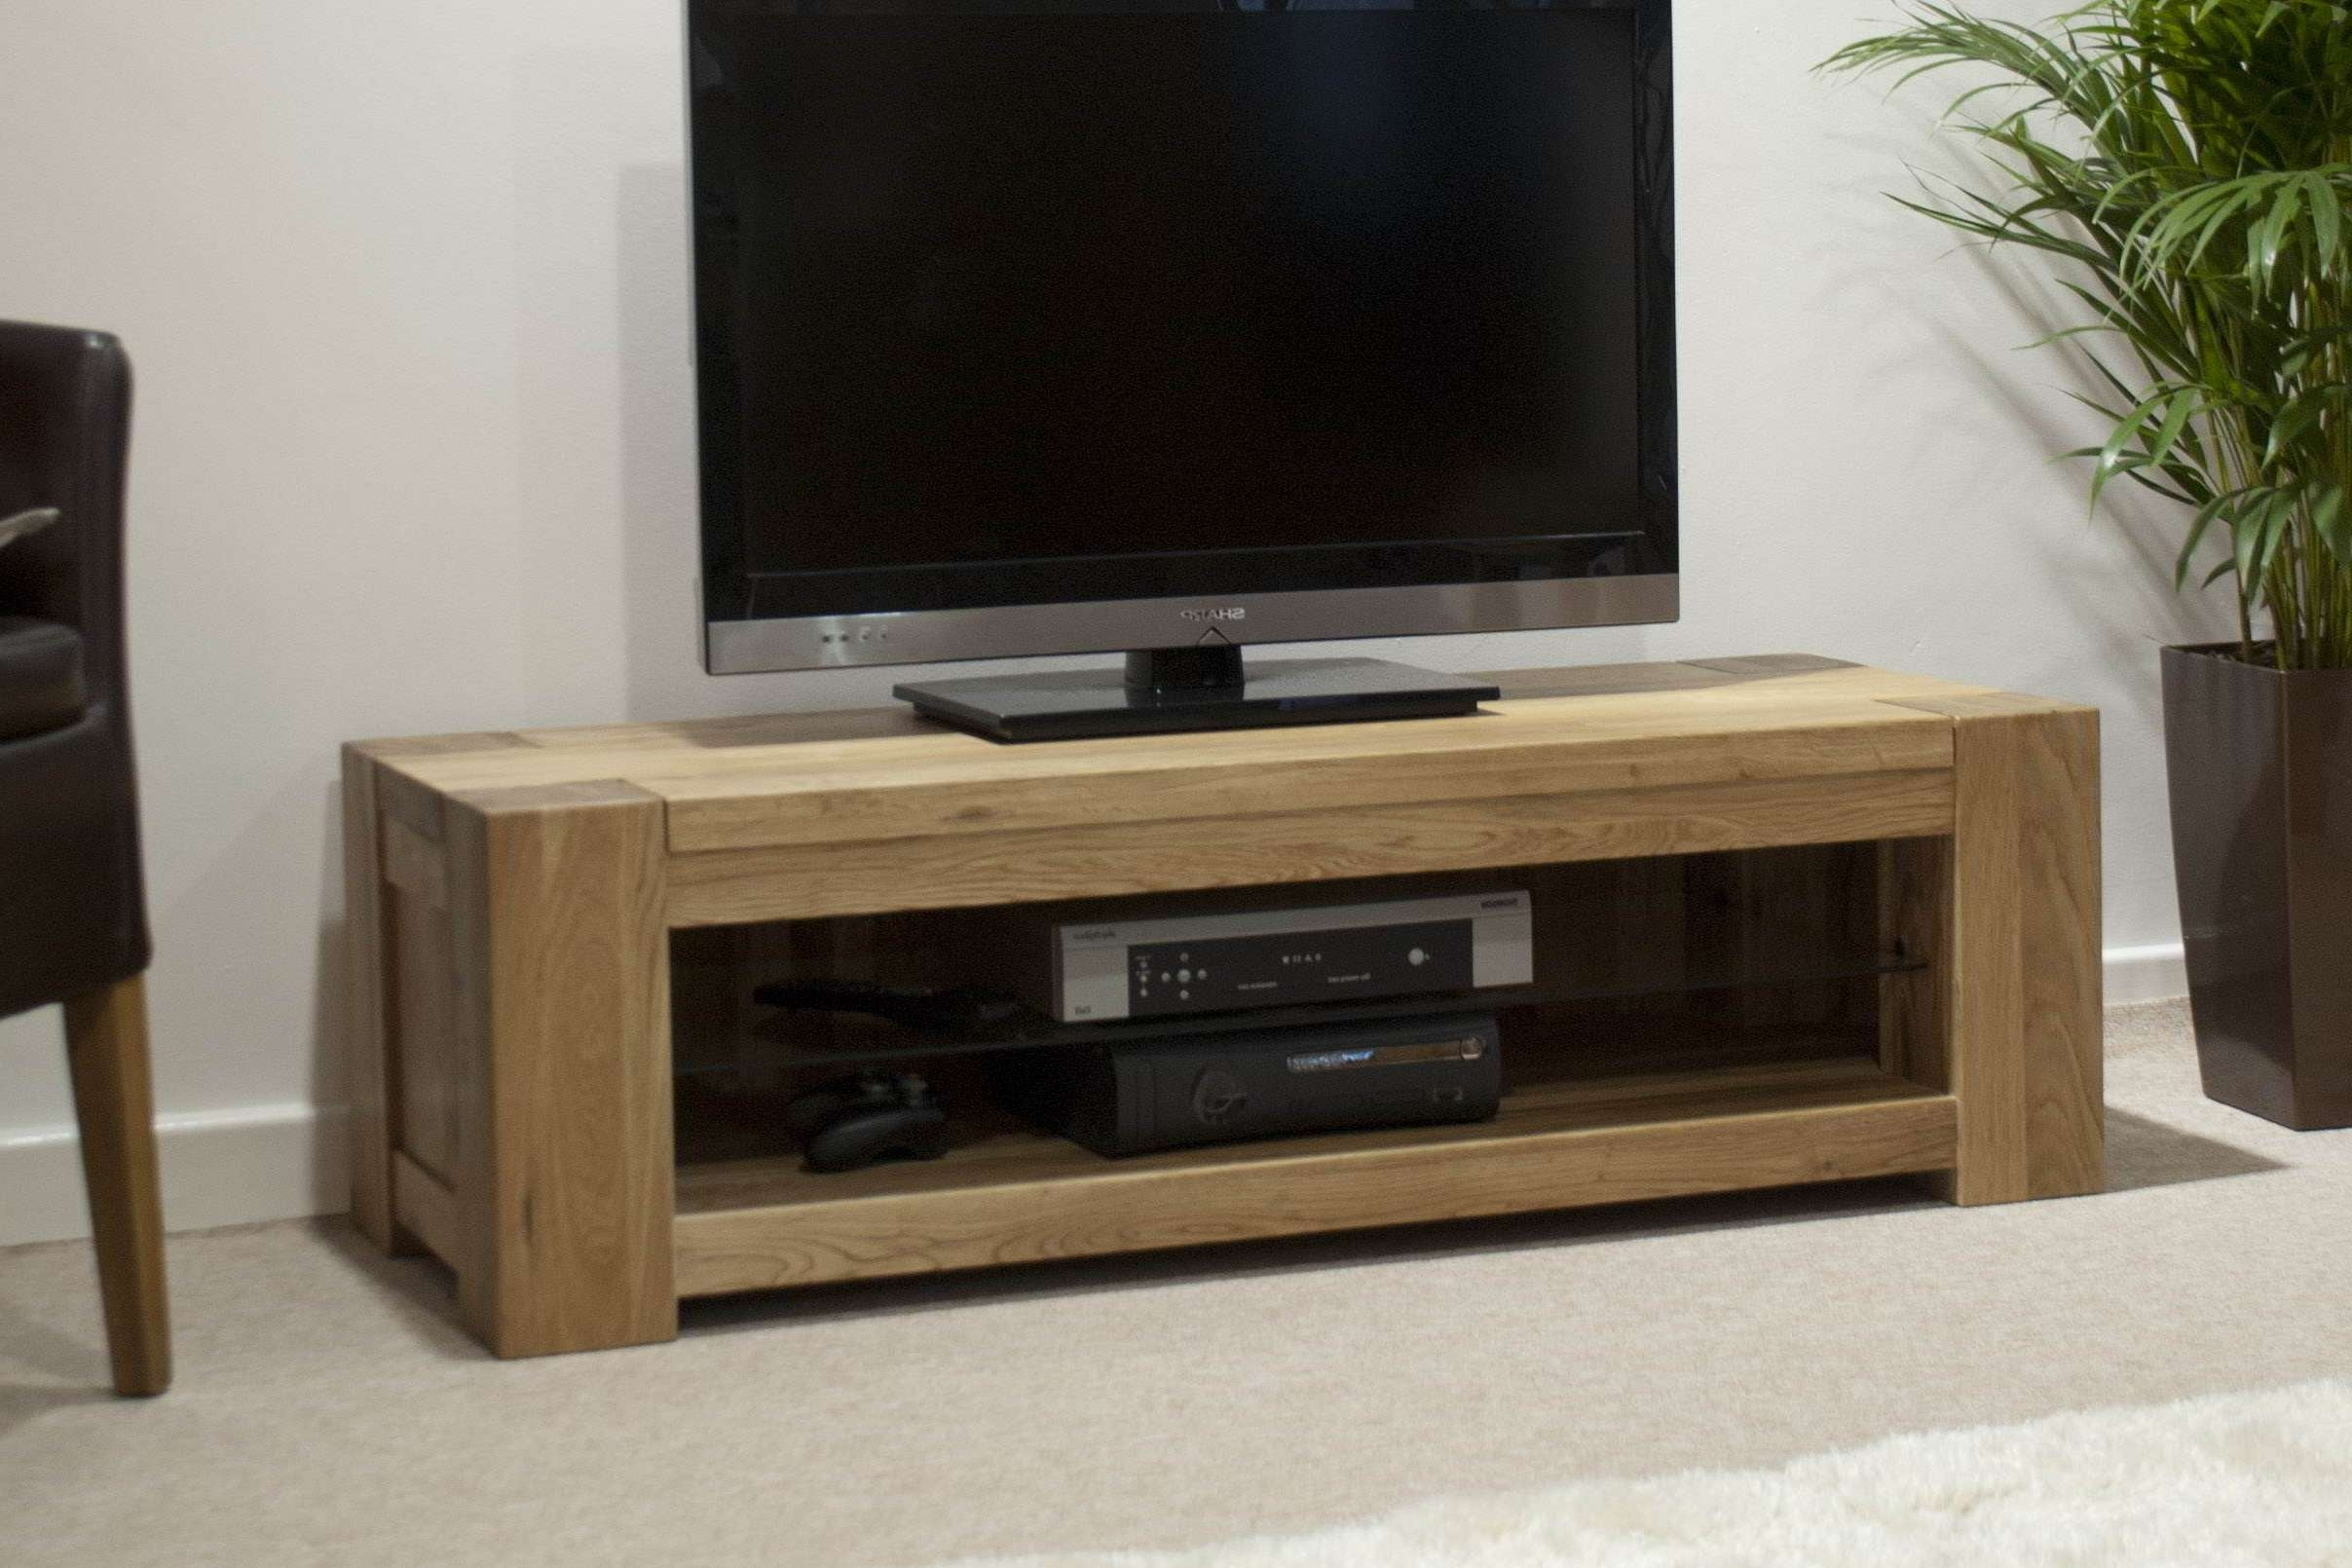 Padova Solid Oak Furniture Plasma Television Cabinet Stand Unit | Ebay With Regard To Oak Tv Stands Furniture (View 13 of 15)